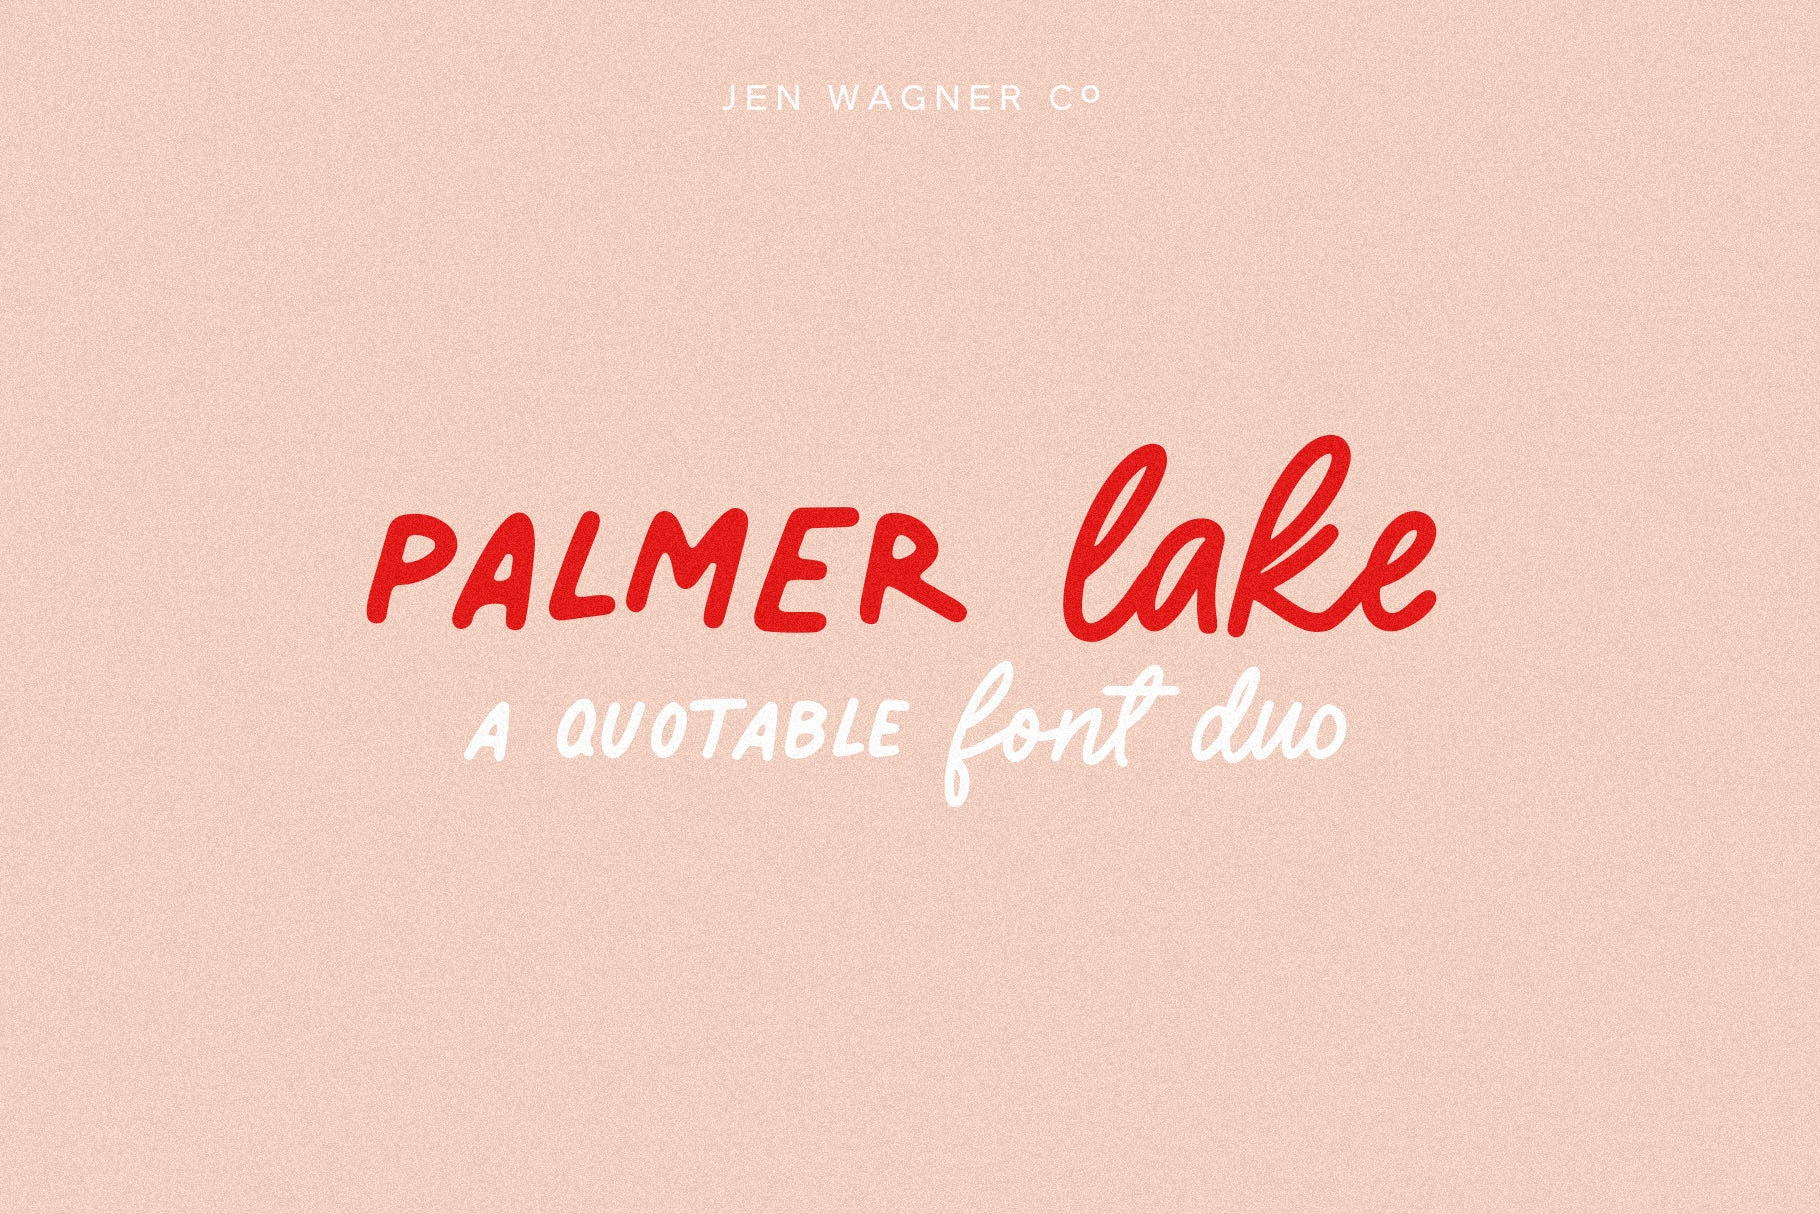 Palmer Lake | Quotable Font Duo